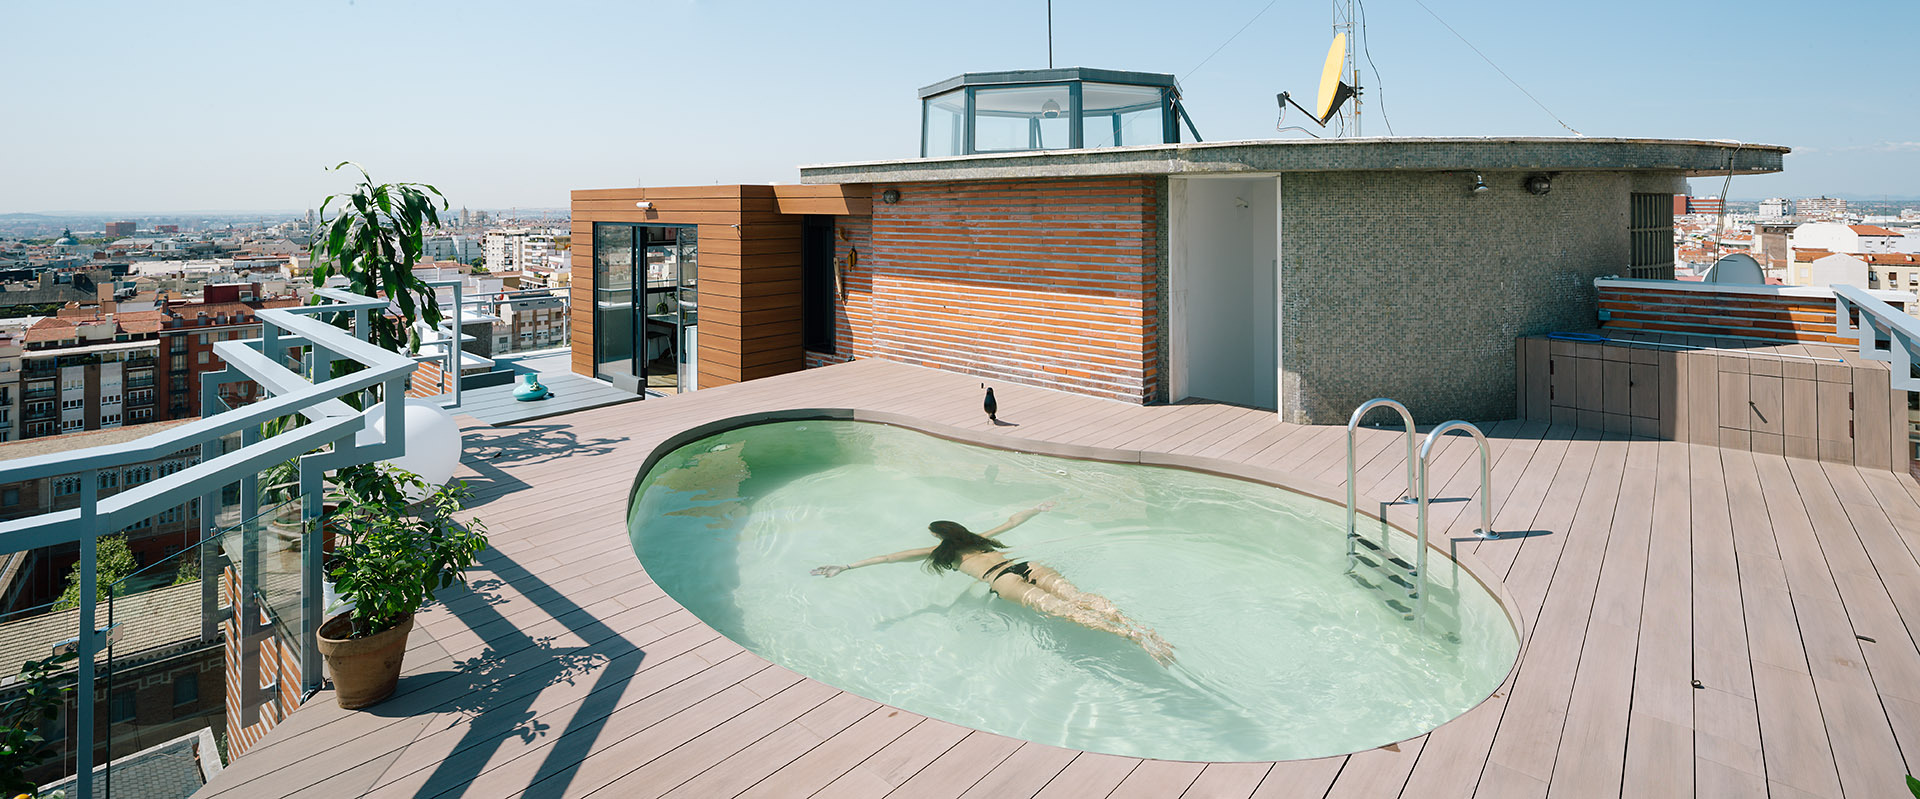 A chalet in the sky of madrid i arquitectura archdaily - Piscina terraza atico ...